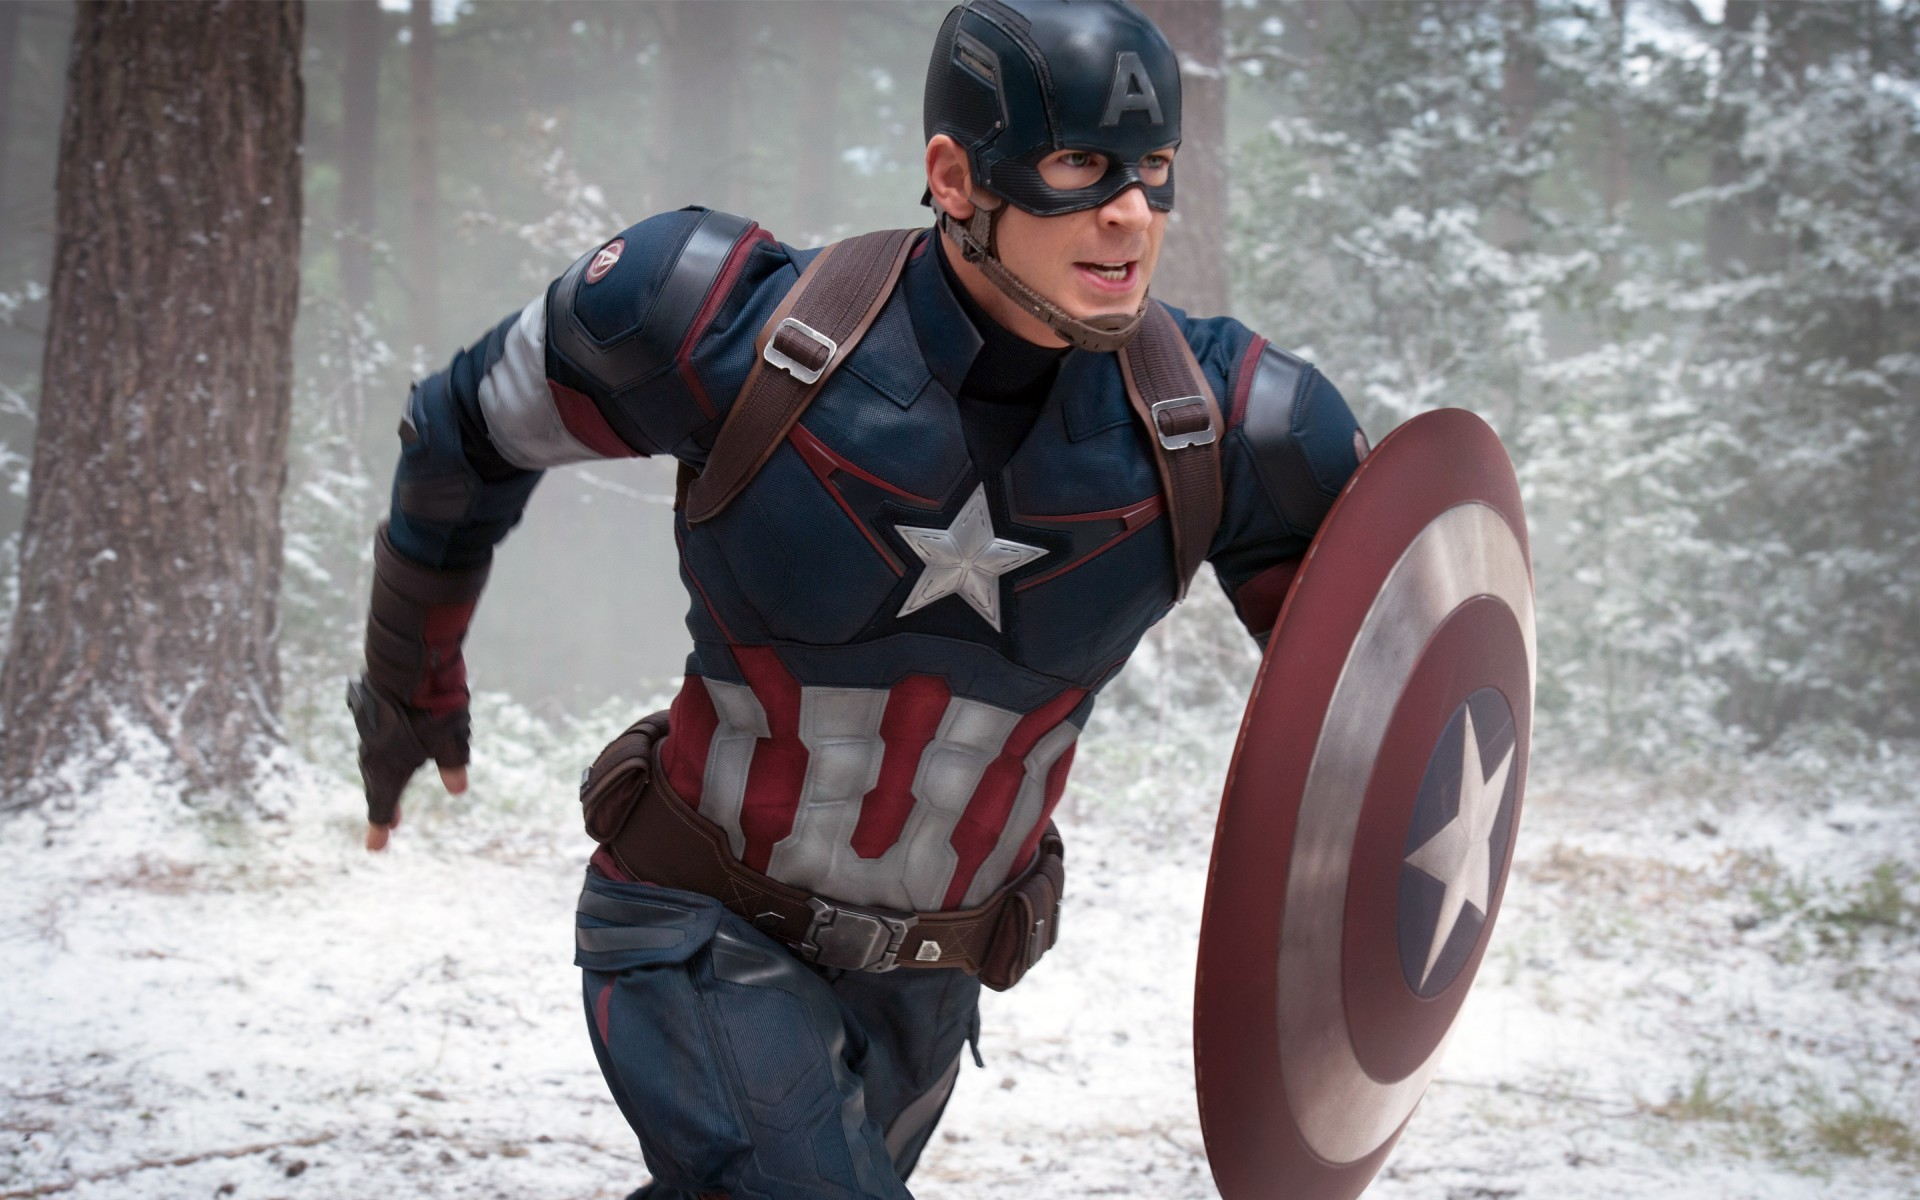 Iphone 5 Anime Wallpaper Captain America Avengers 2 Wallpapers Hd Wallpapers Id